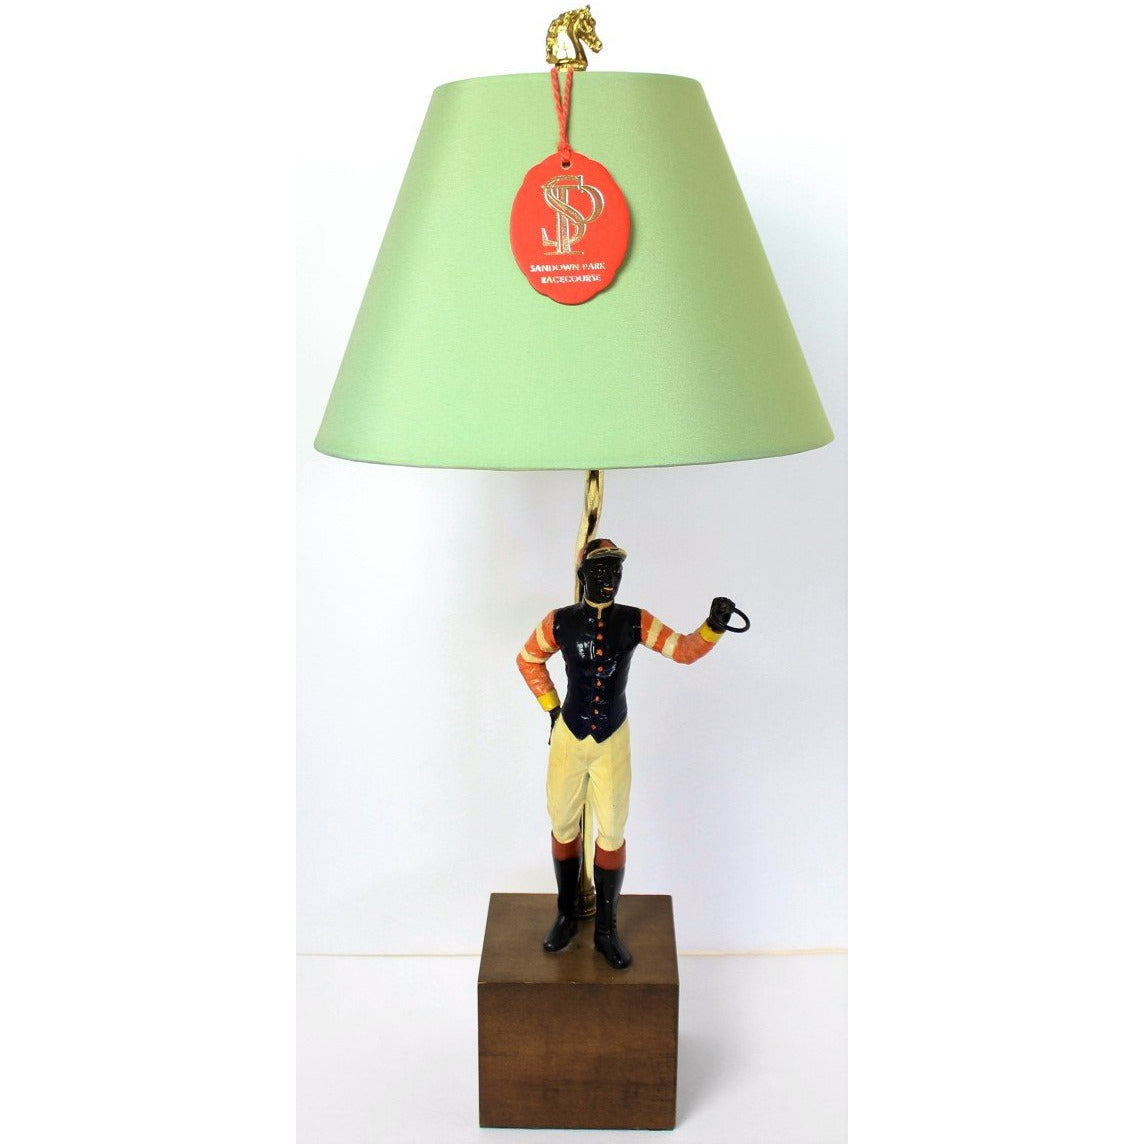 """21"" Club jockey lamp"